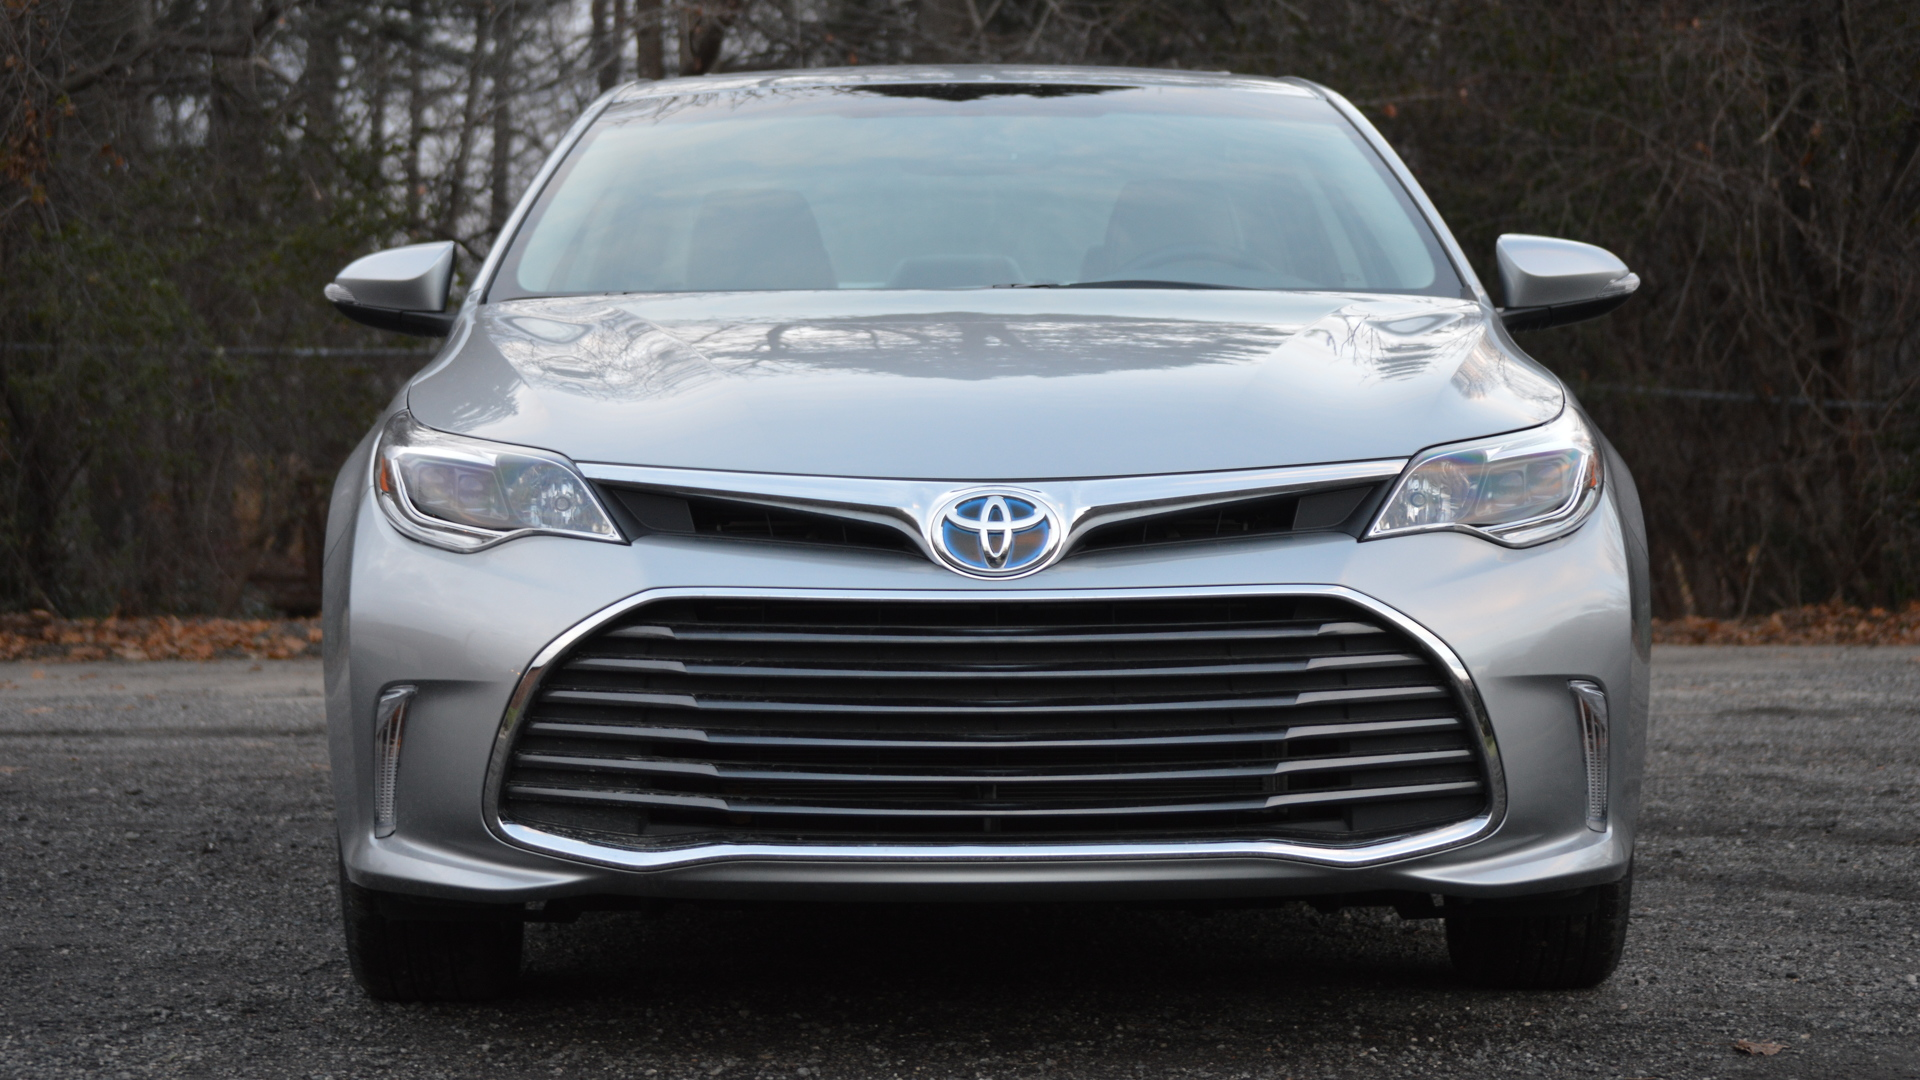 irving for sale hybrid tx of avalon toyota in op